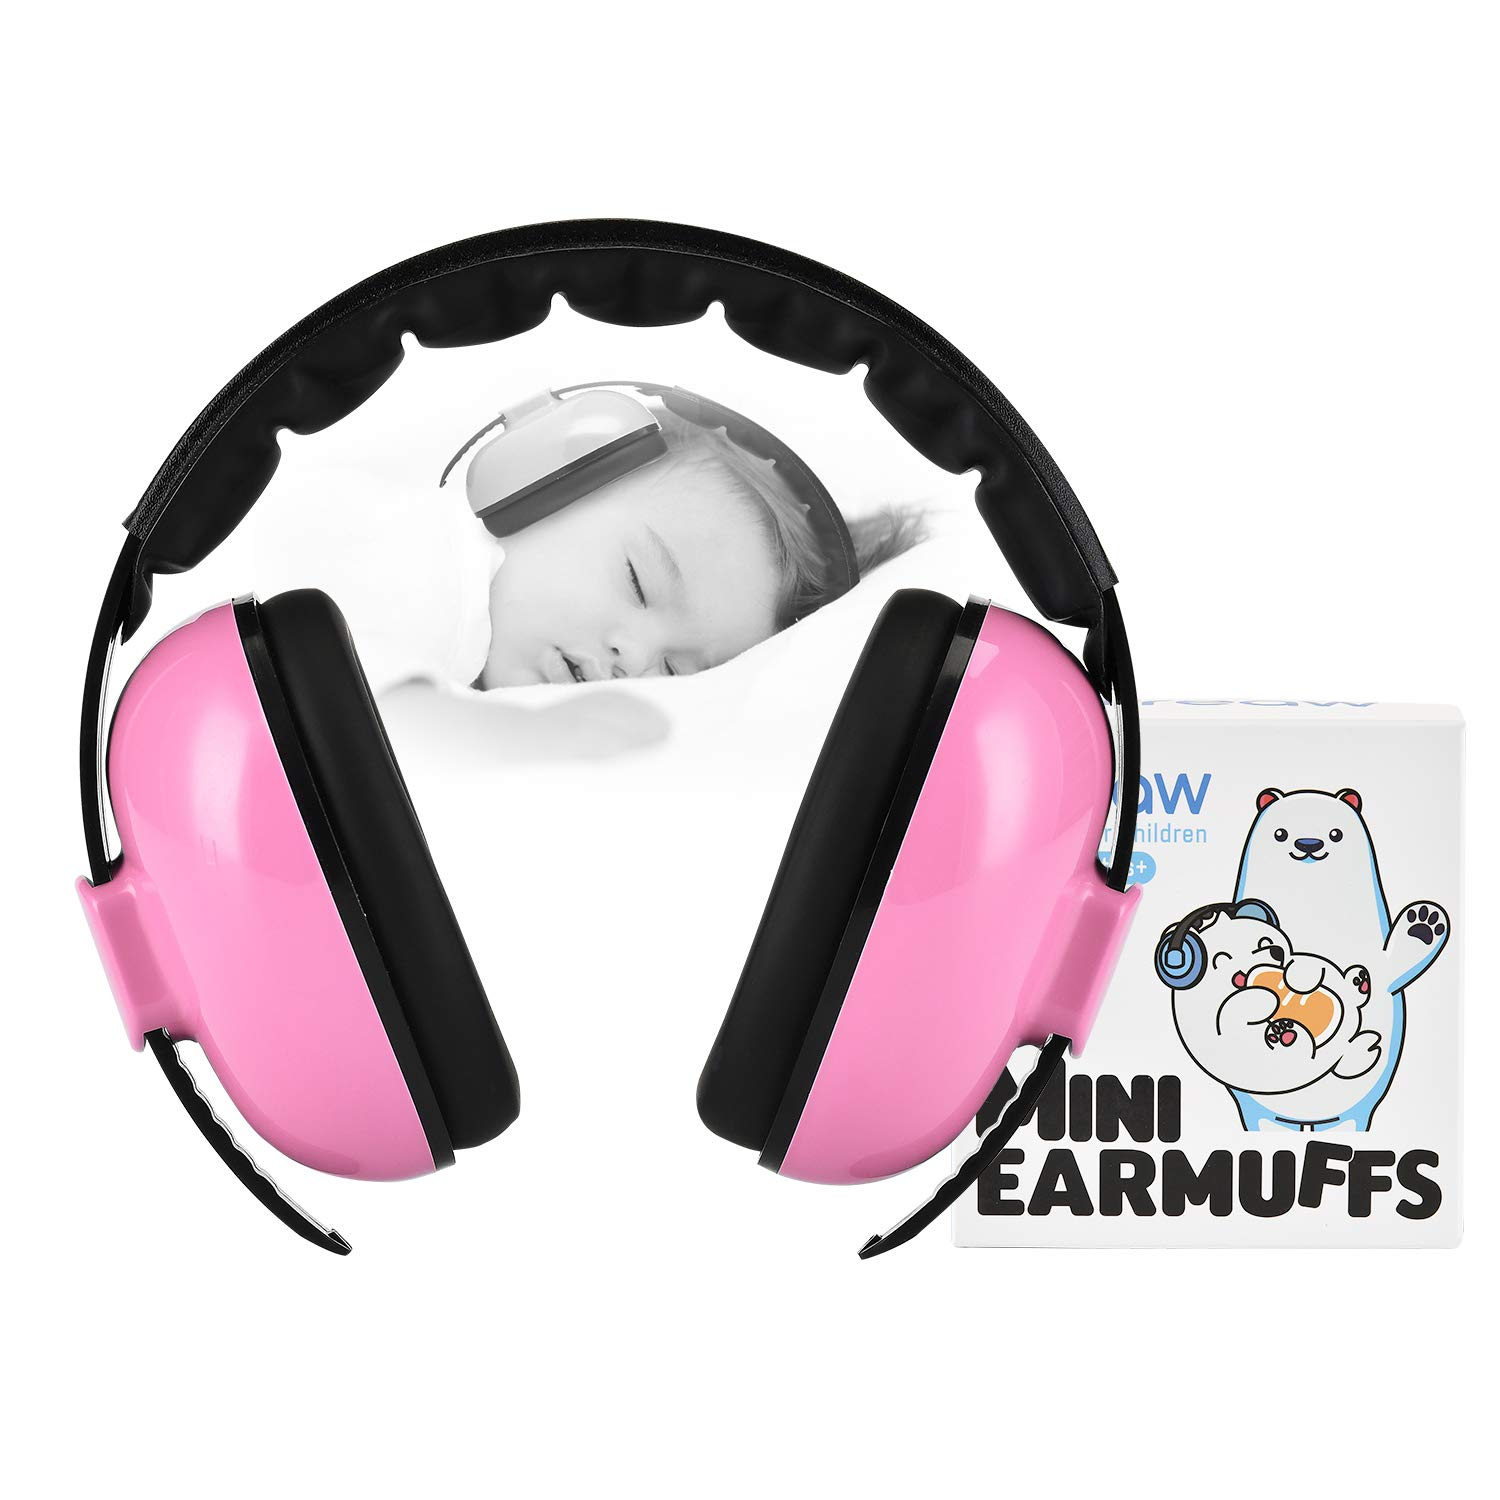 Noise Cancelling Headphones for Kids, Baby Ear Muffs Noise Protection Infant